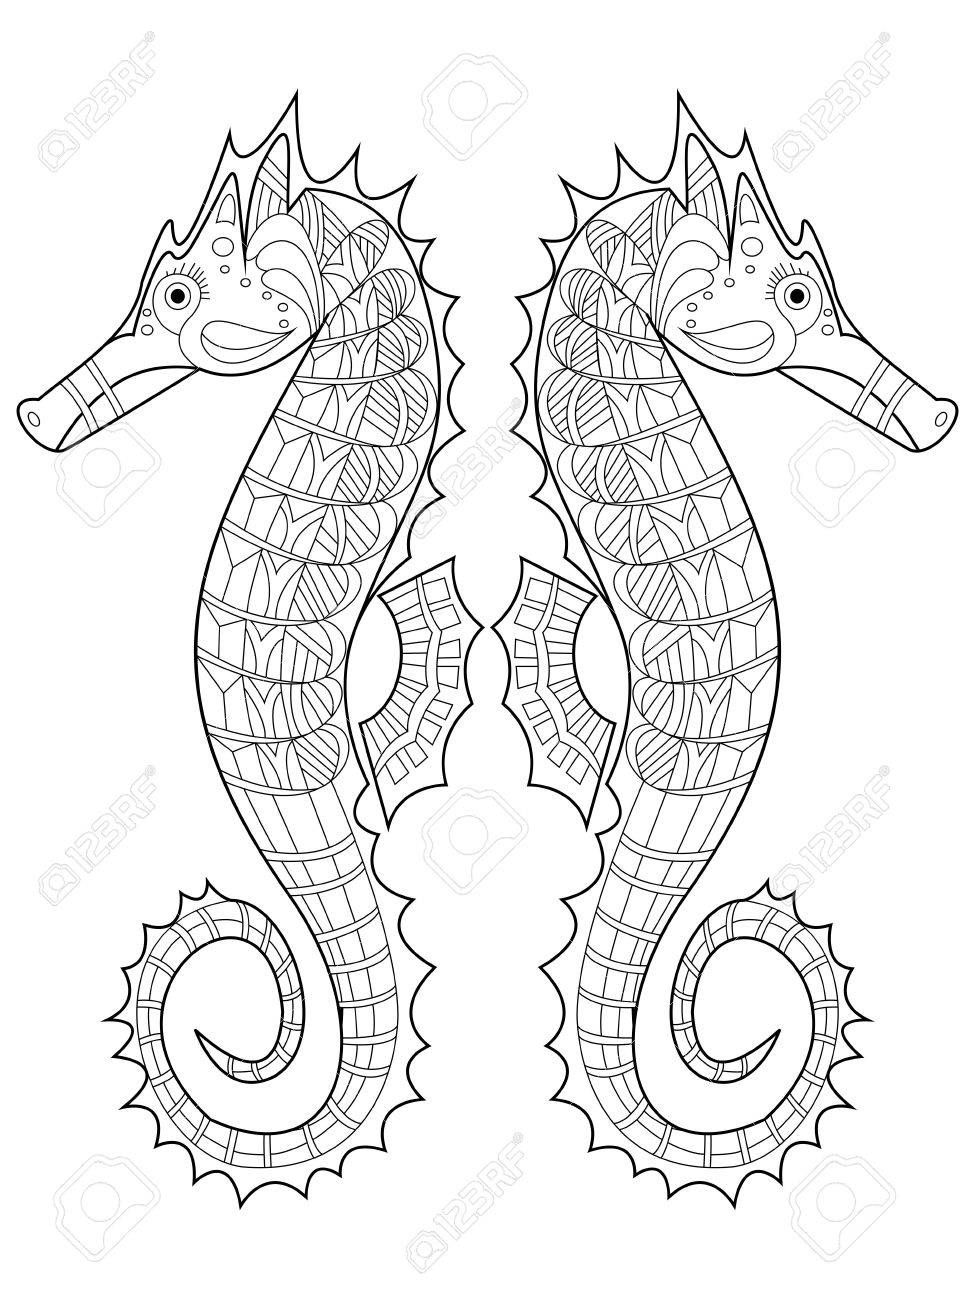 Sea Horse Coloring Book For Adults Vector Illustration. Anti-stress ...